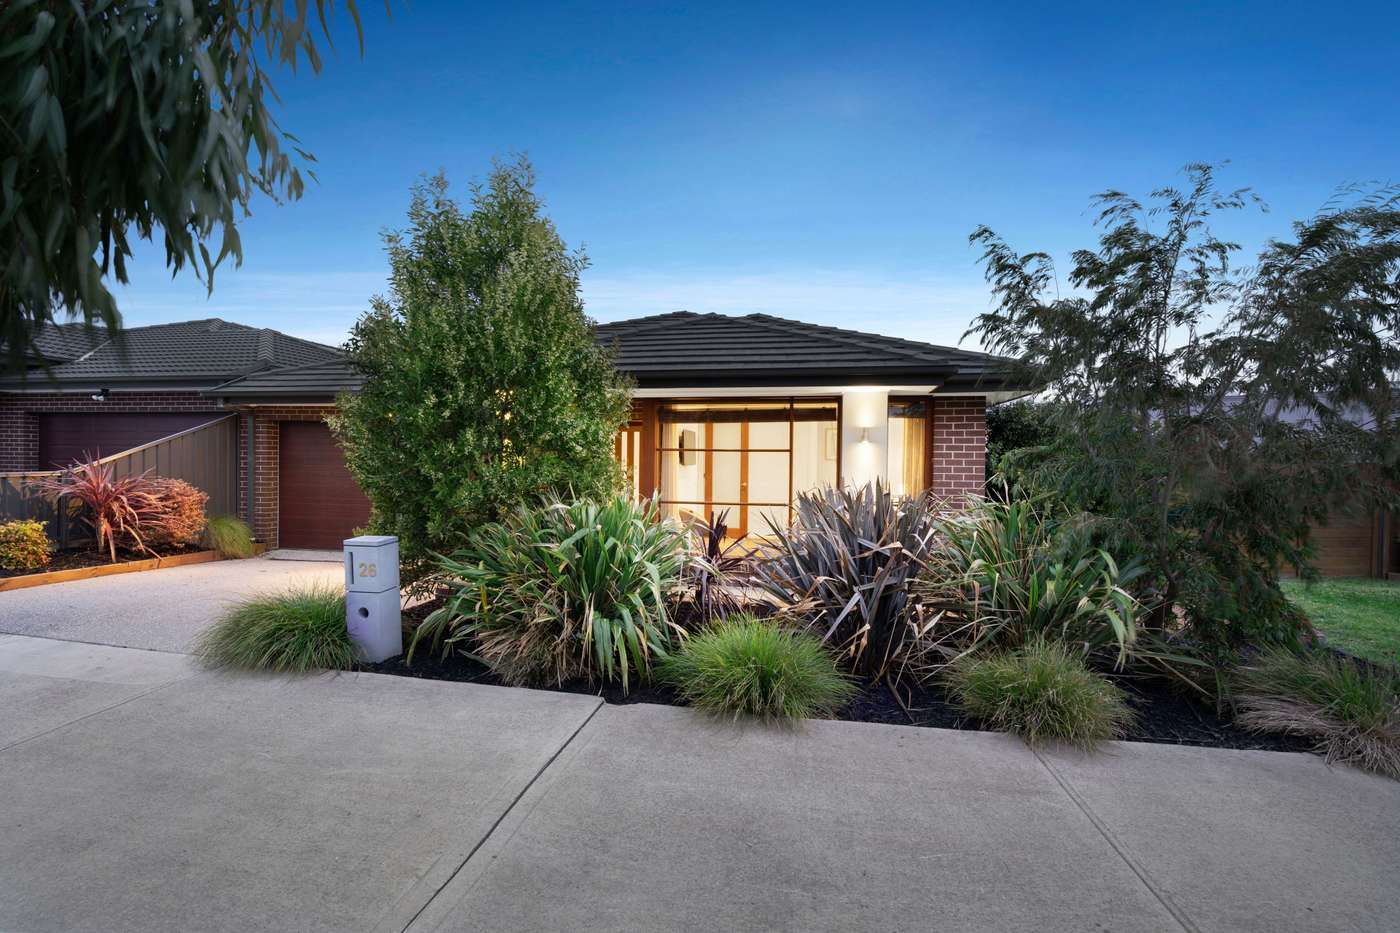 Main view of Homely house listing, 26 Whitebark Street, Wollert, VIC 3750